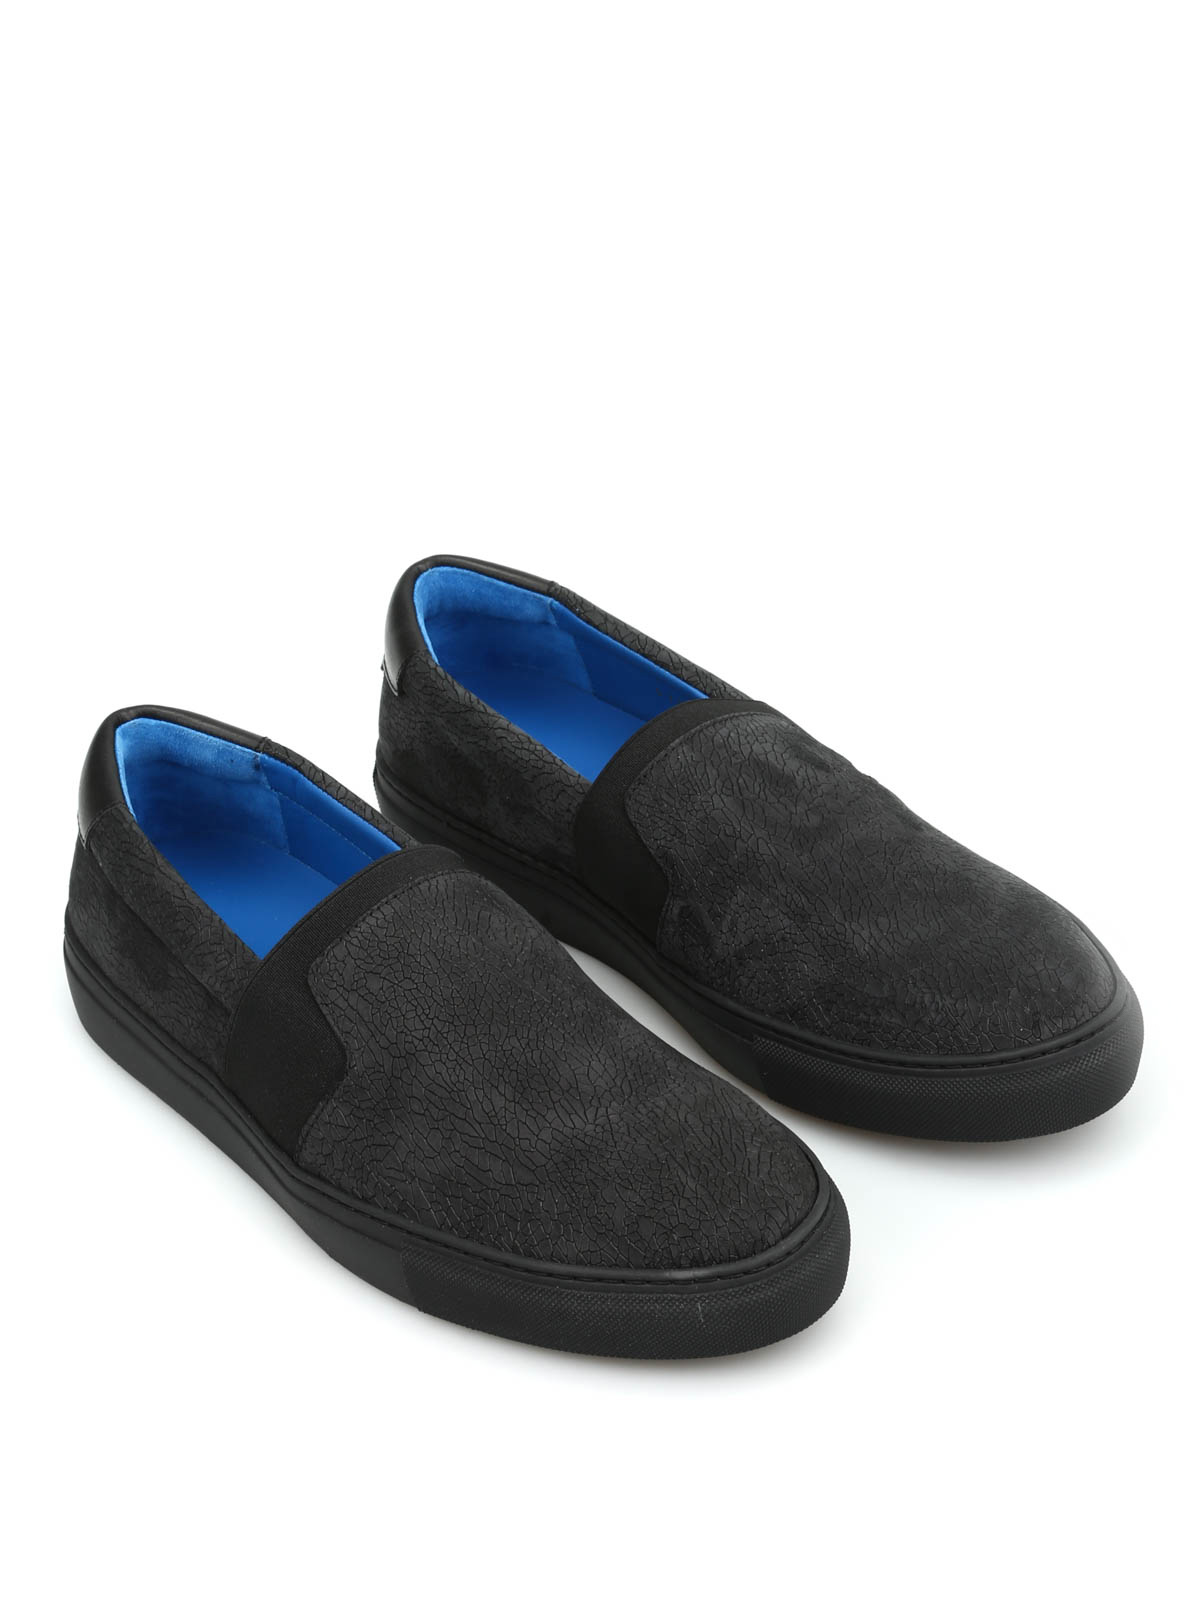 8662a58b5ef2 Balenciaga - Leather slip-on - Loafers   Slippers - 412353 WAX91 1000